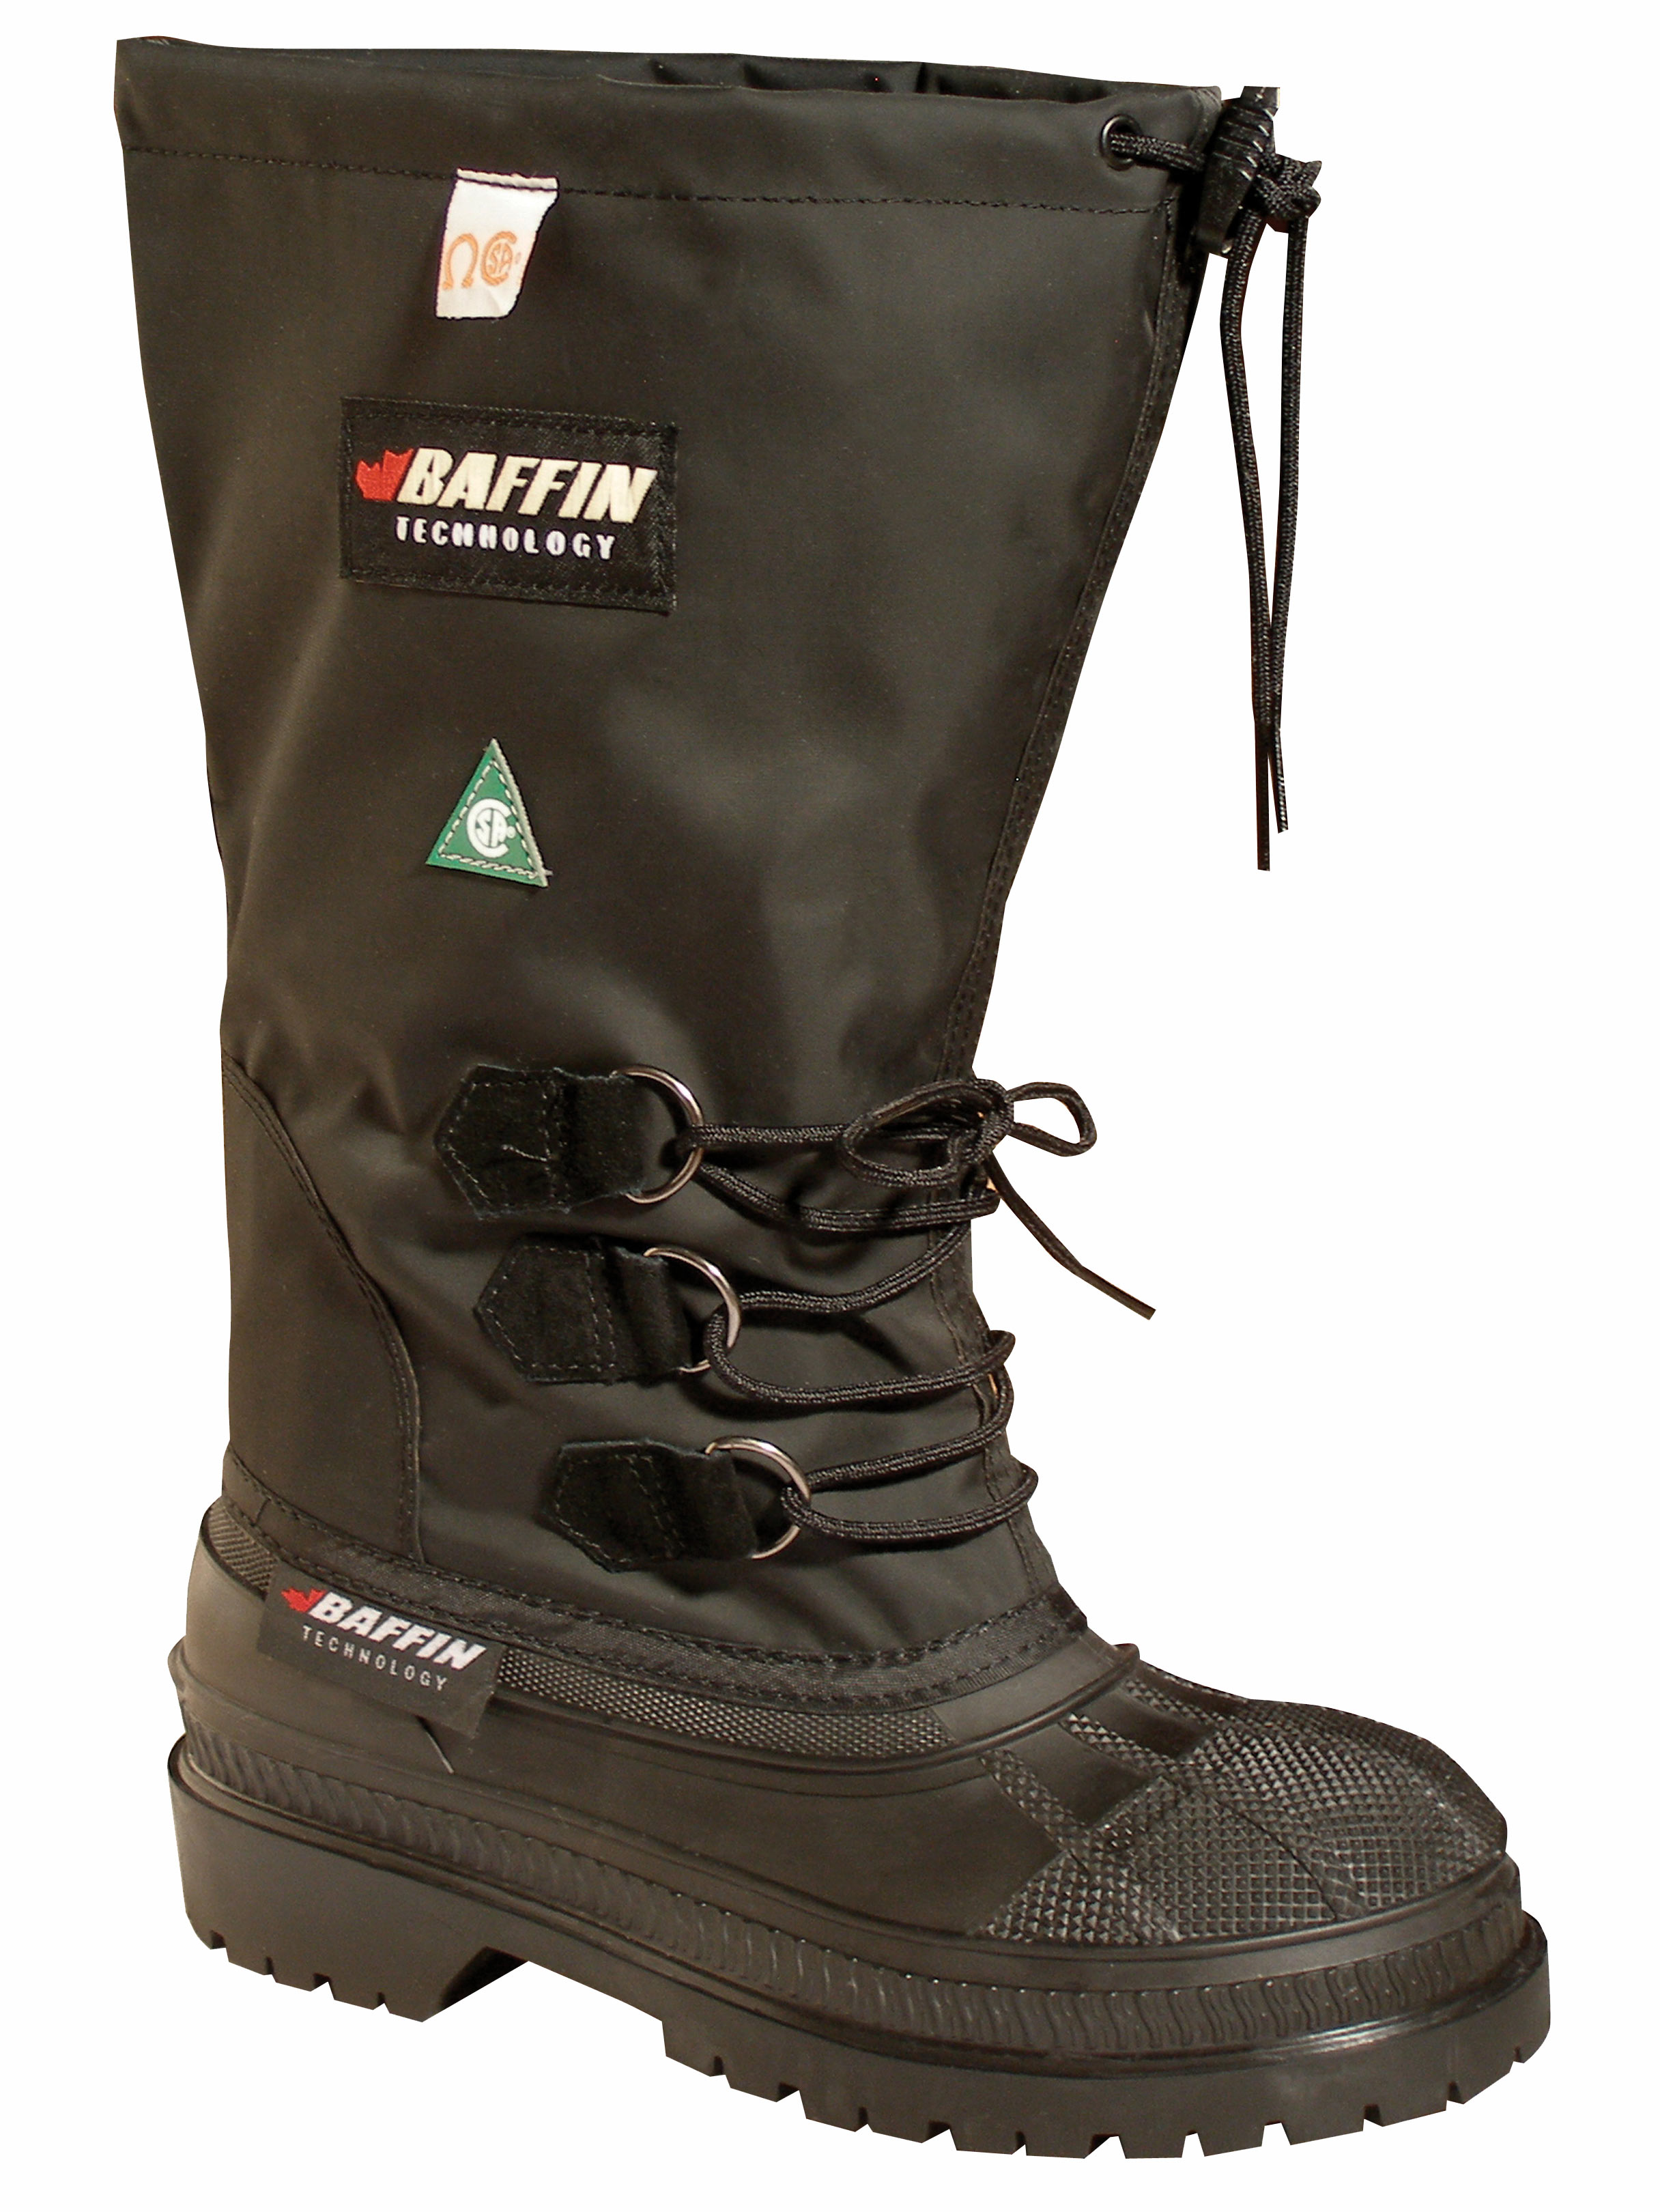 Baffin Oilrig Womens Extreme Cold Work Boots 8757